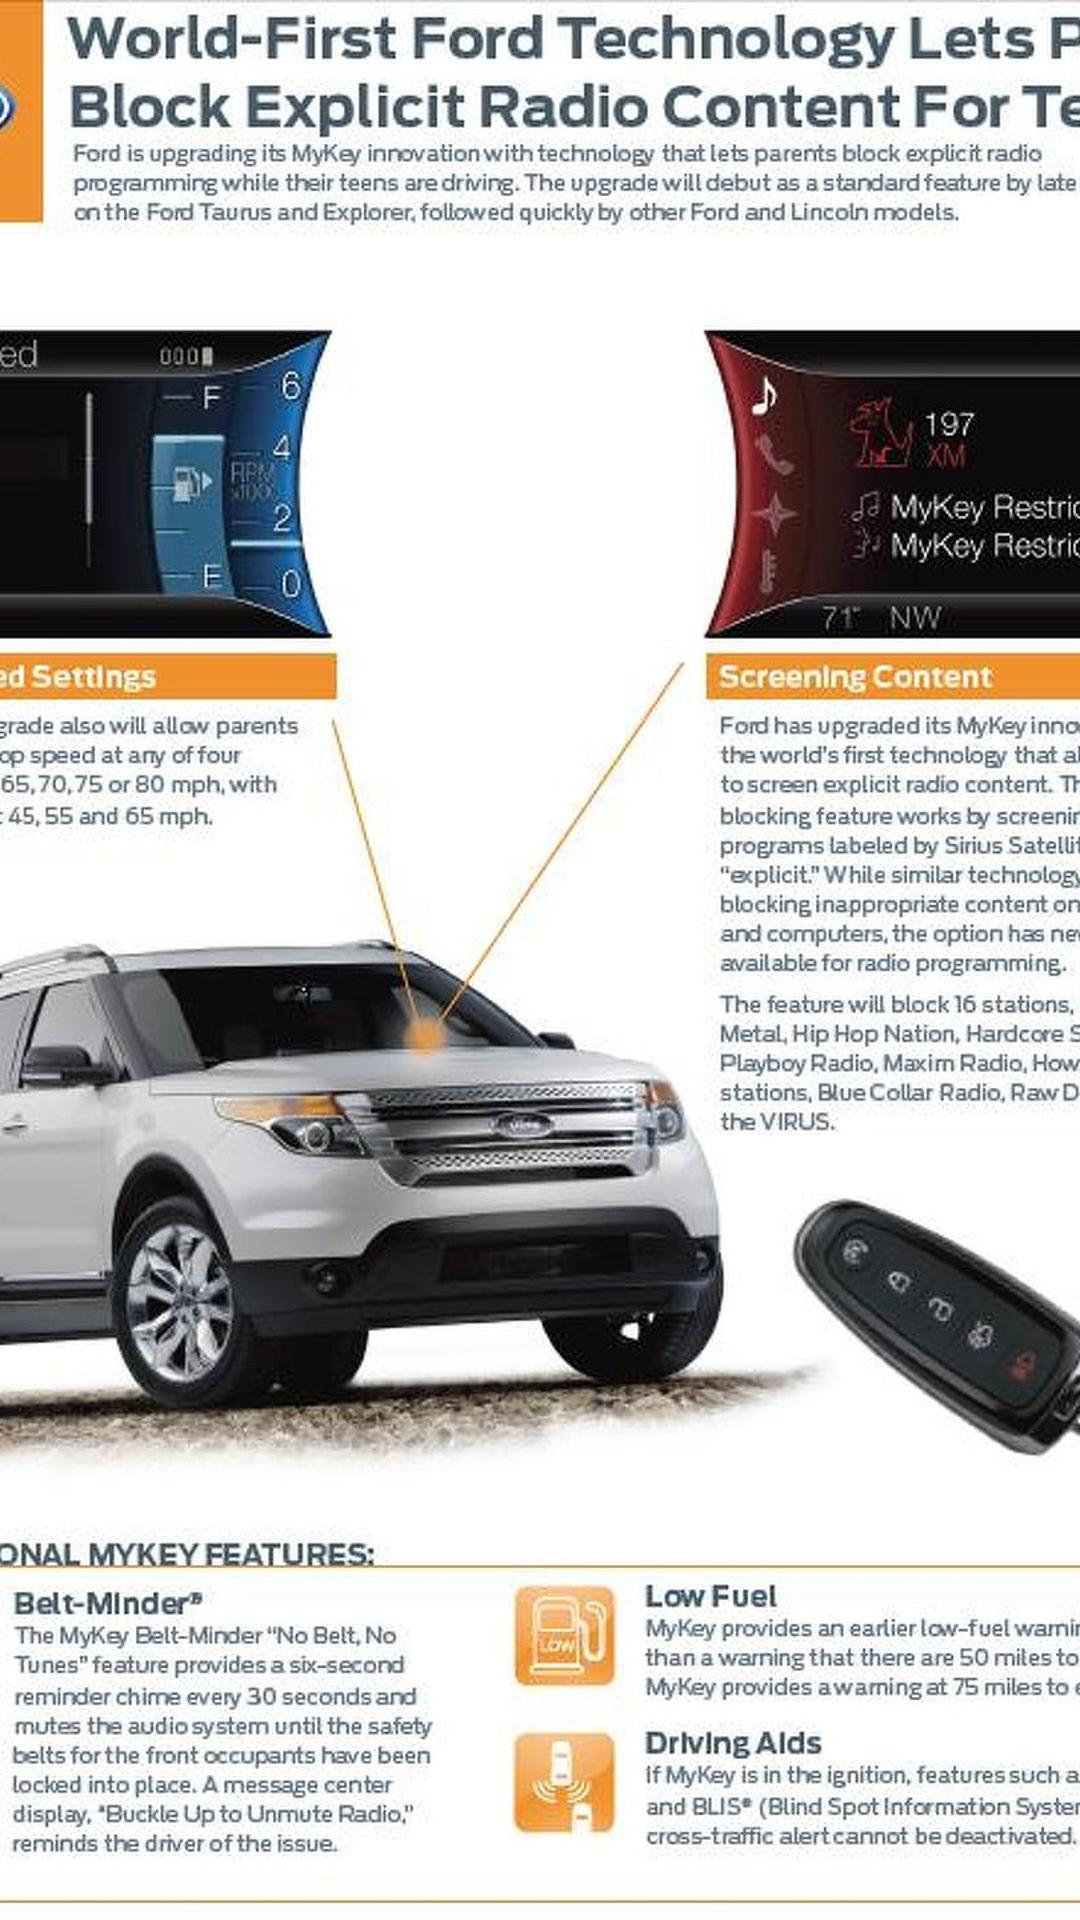 2011 Ford MyKey offers speed and radio restrictions for teens video